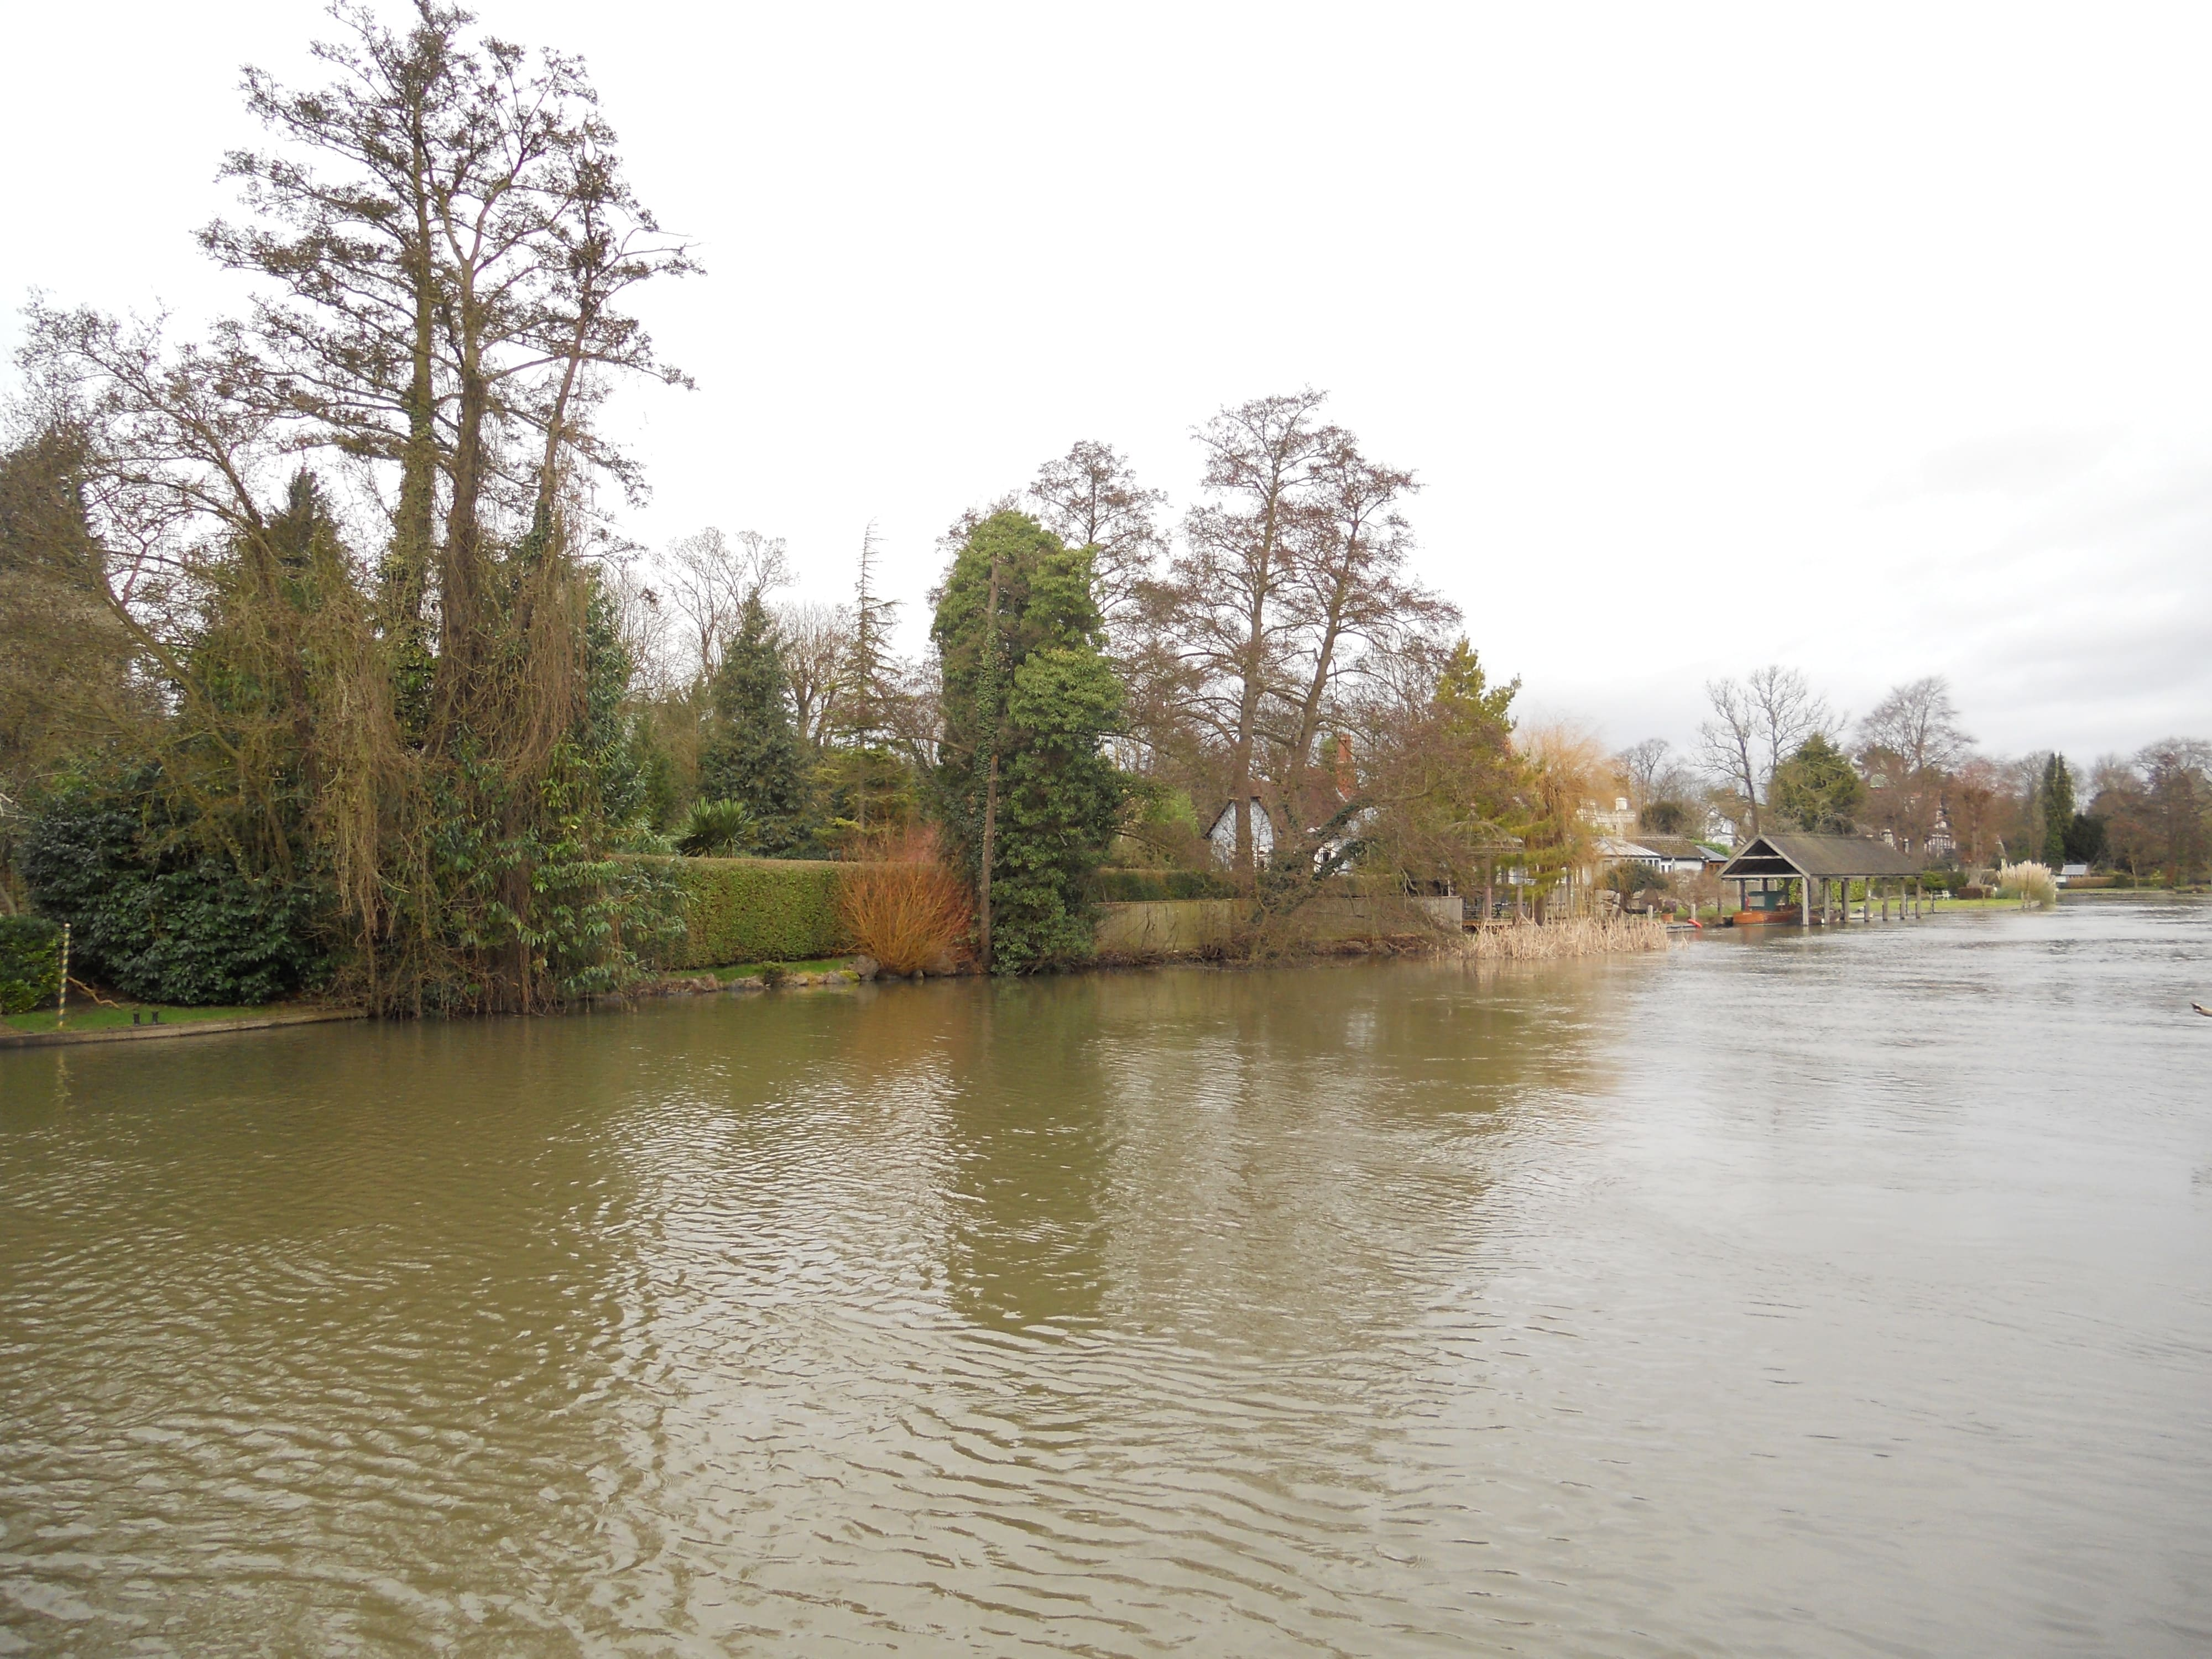 The Thames at Boulters Weir